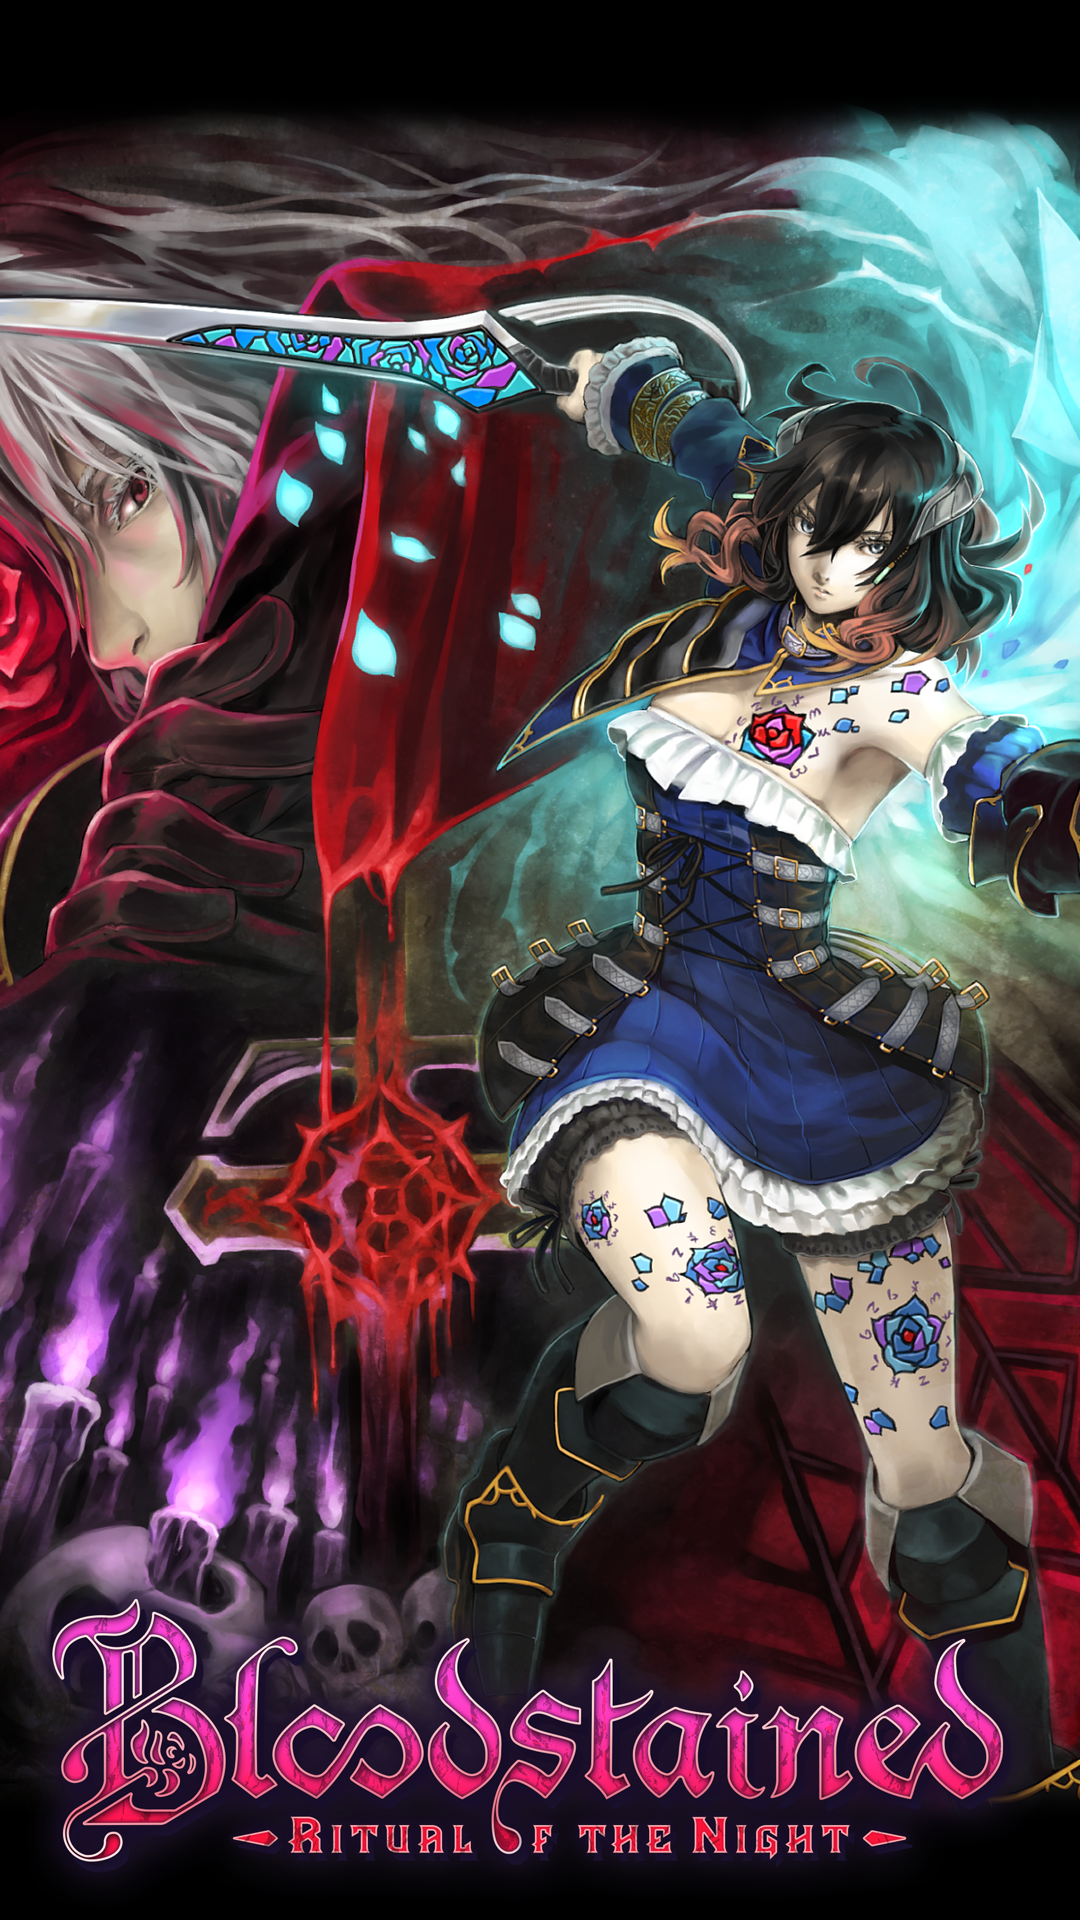 Image Bloodstained Mobile Wallpaperpng Bloodstained Ritual Of